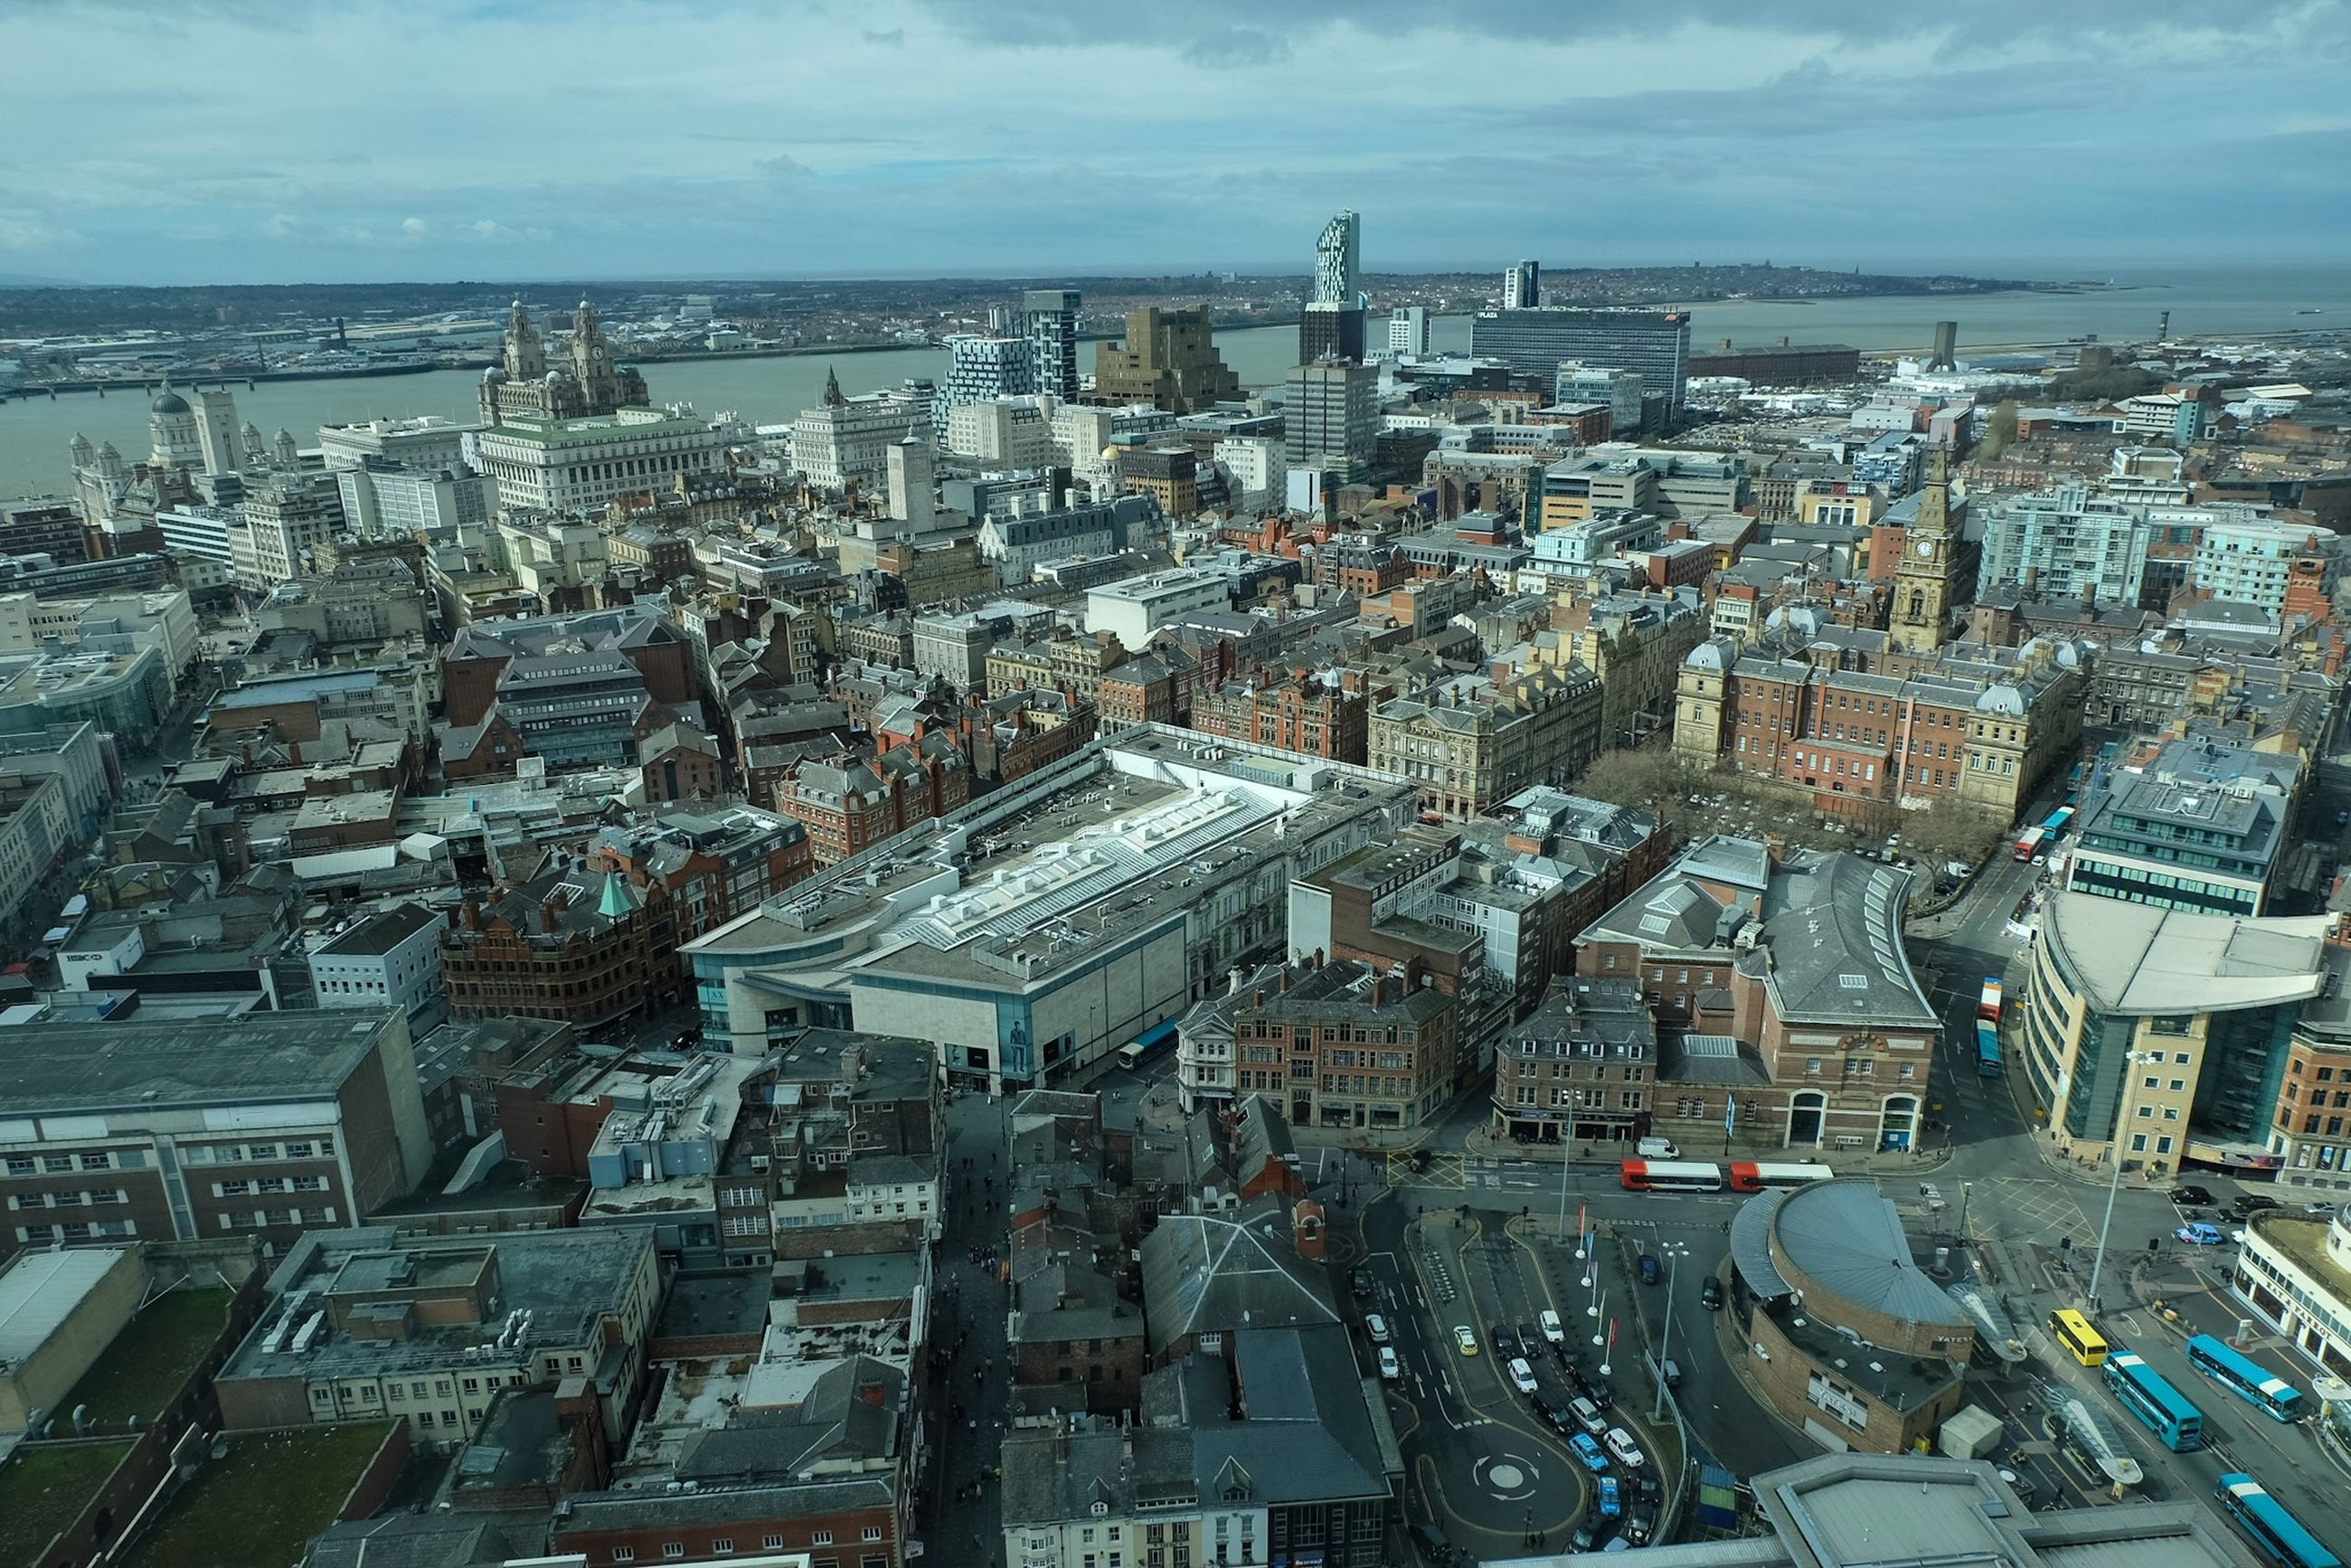 building exterior, architecture, built structure, city, high angle view, cityscape, crowded, sea, sky, city life, residential district, water, residential building, residential structure, street, transportation, incidental people, large group of people, elevated view, outdoors